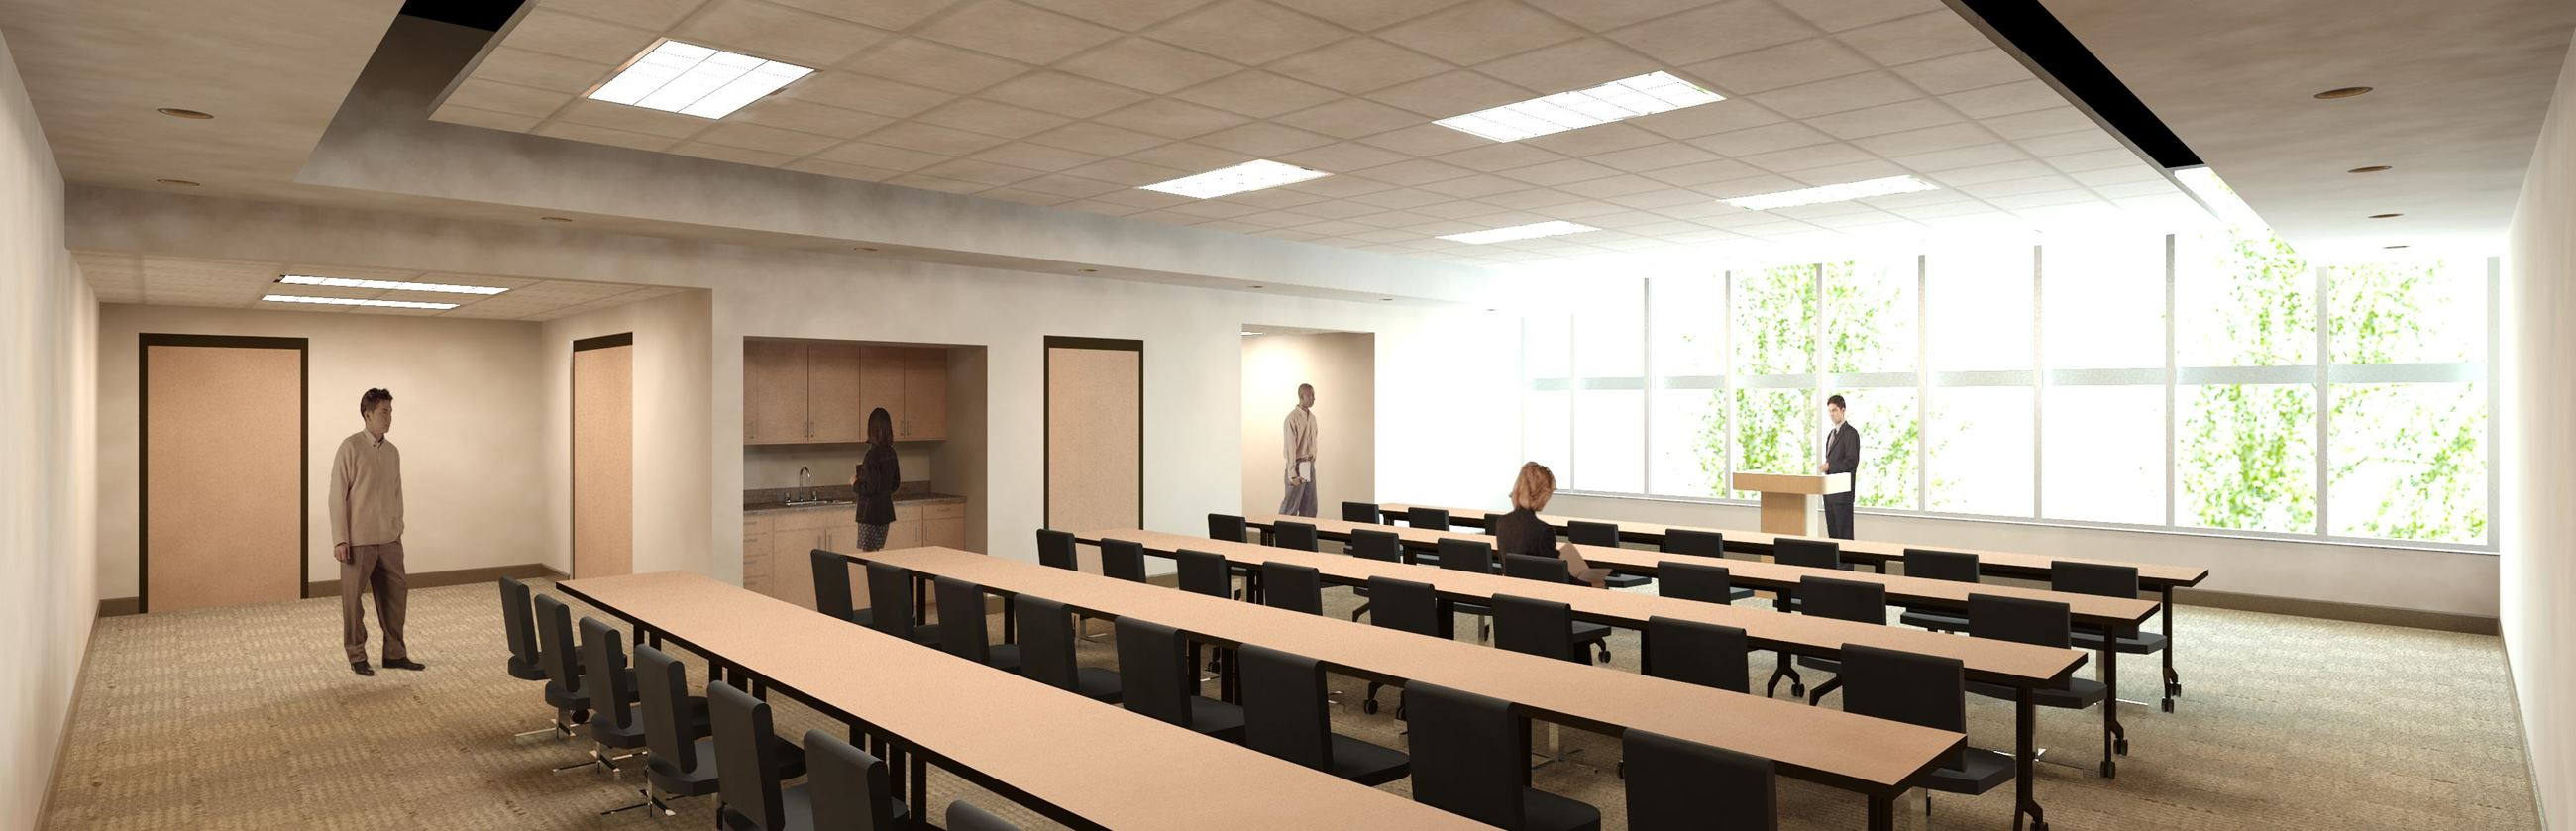 Police Department community room rendering